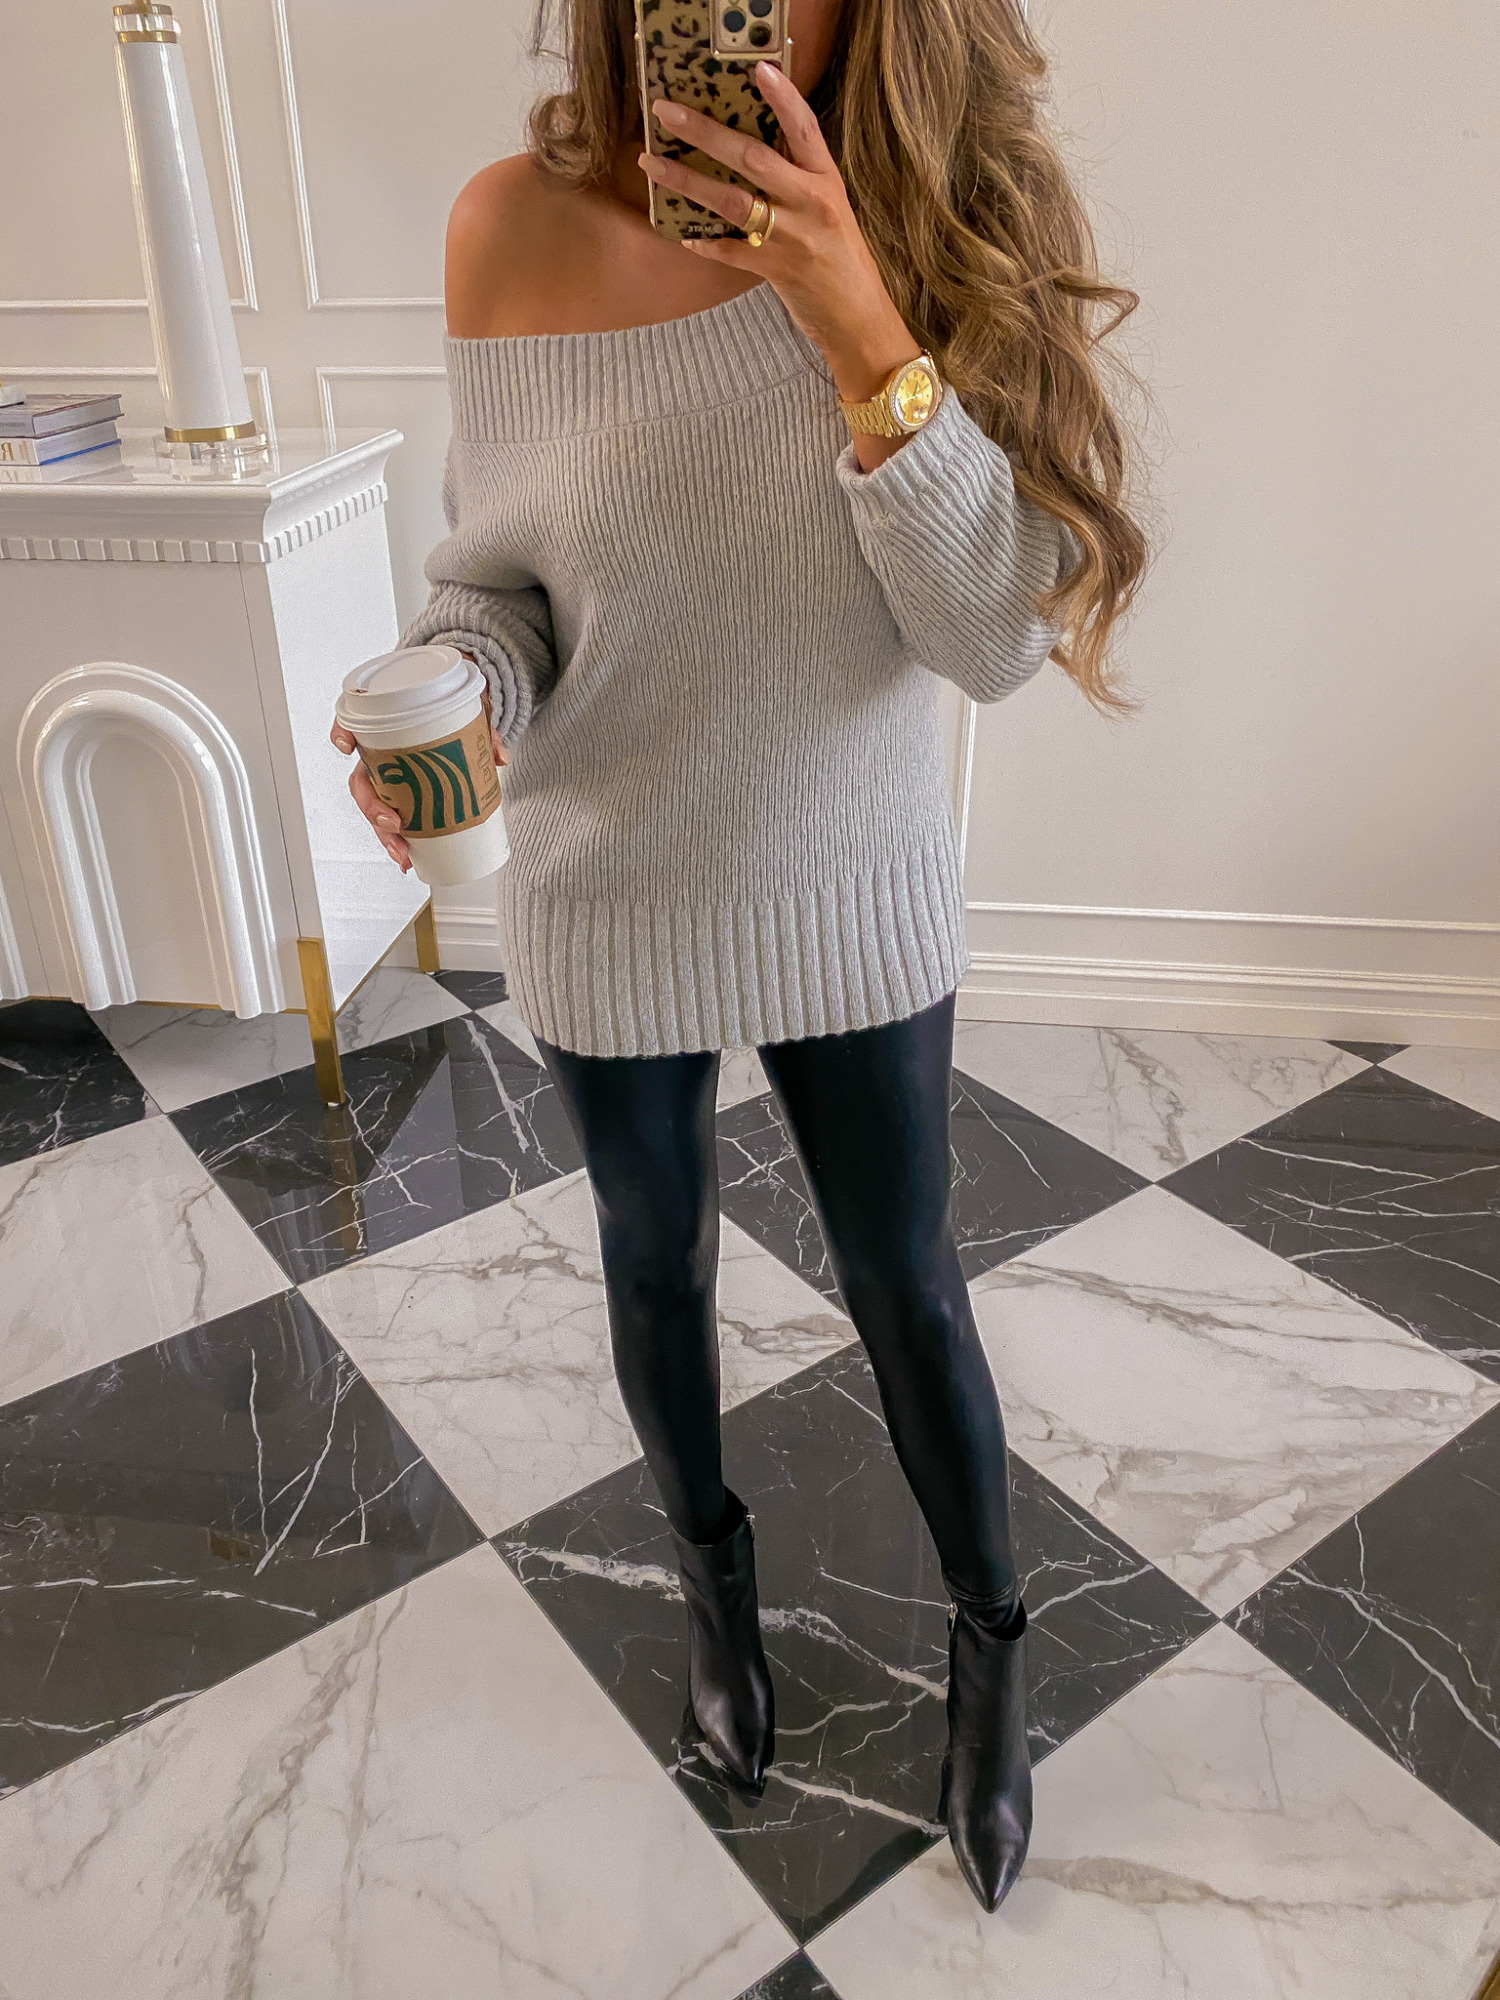 NSALE 2020, Nordstrom Sale 2020, Fall Fashion, Leather leggings, Emily Ann Gemma  Instagram Recap by popular US life and style blog, The Sweetest Thing: image of Emily Gemma wearing a Chelsea28 sweater, Commando leggings, Steve Madden ankle boots, and Rolex watch.